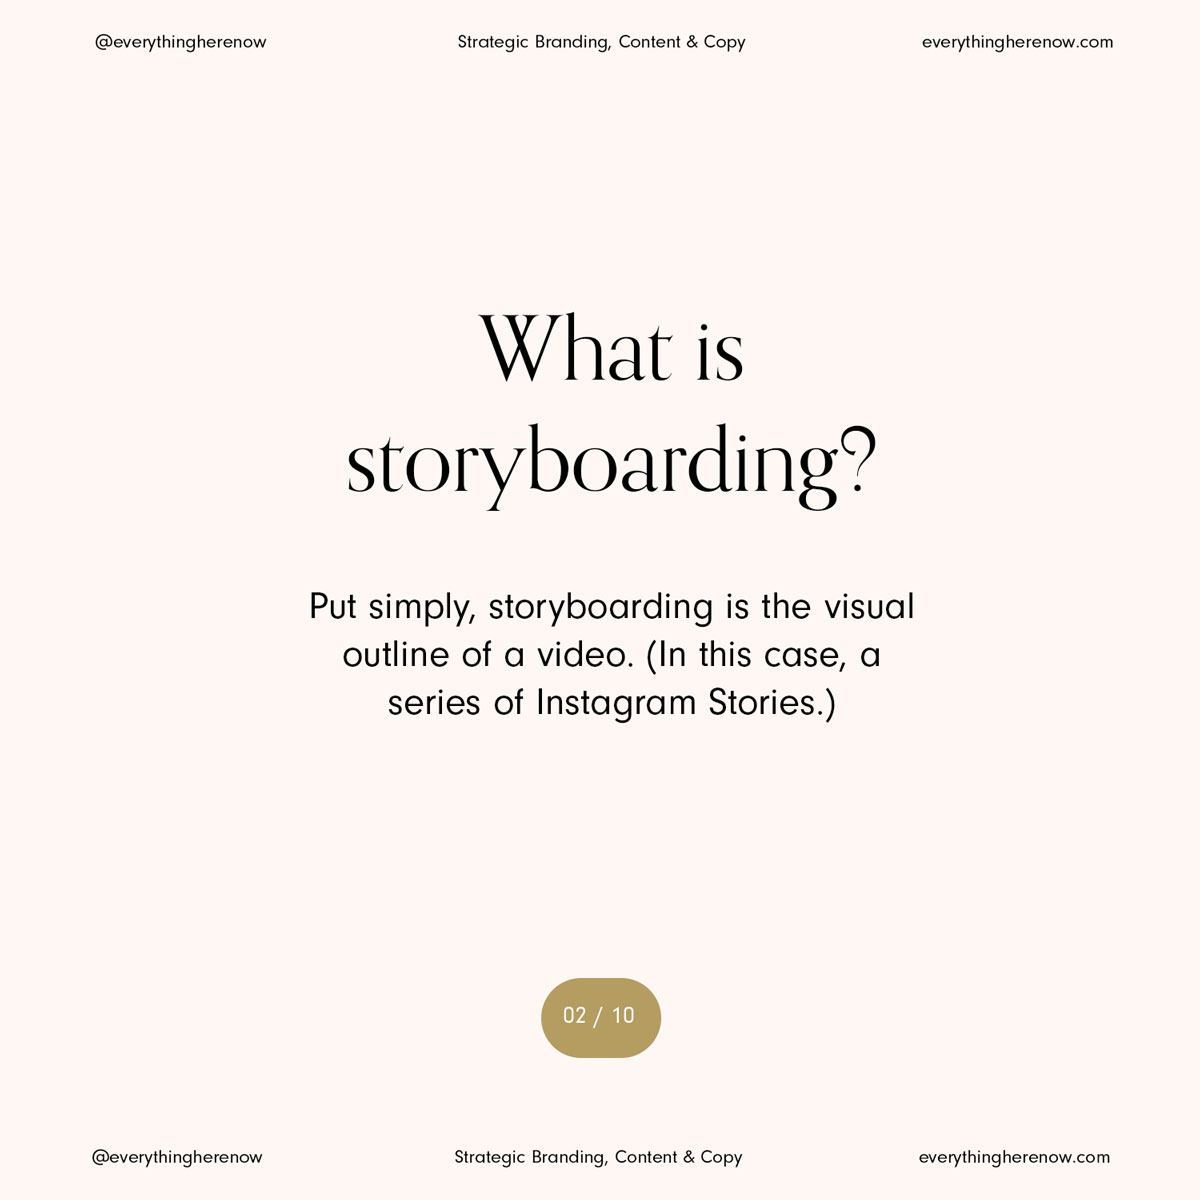 storyboarding-for-instagram-stories-what-it-is-and-when-to-use-it-by-everything-here-now-2